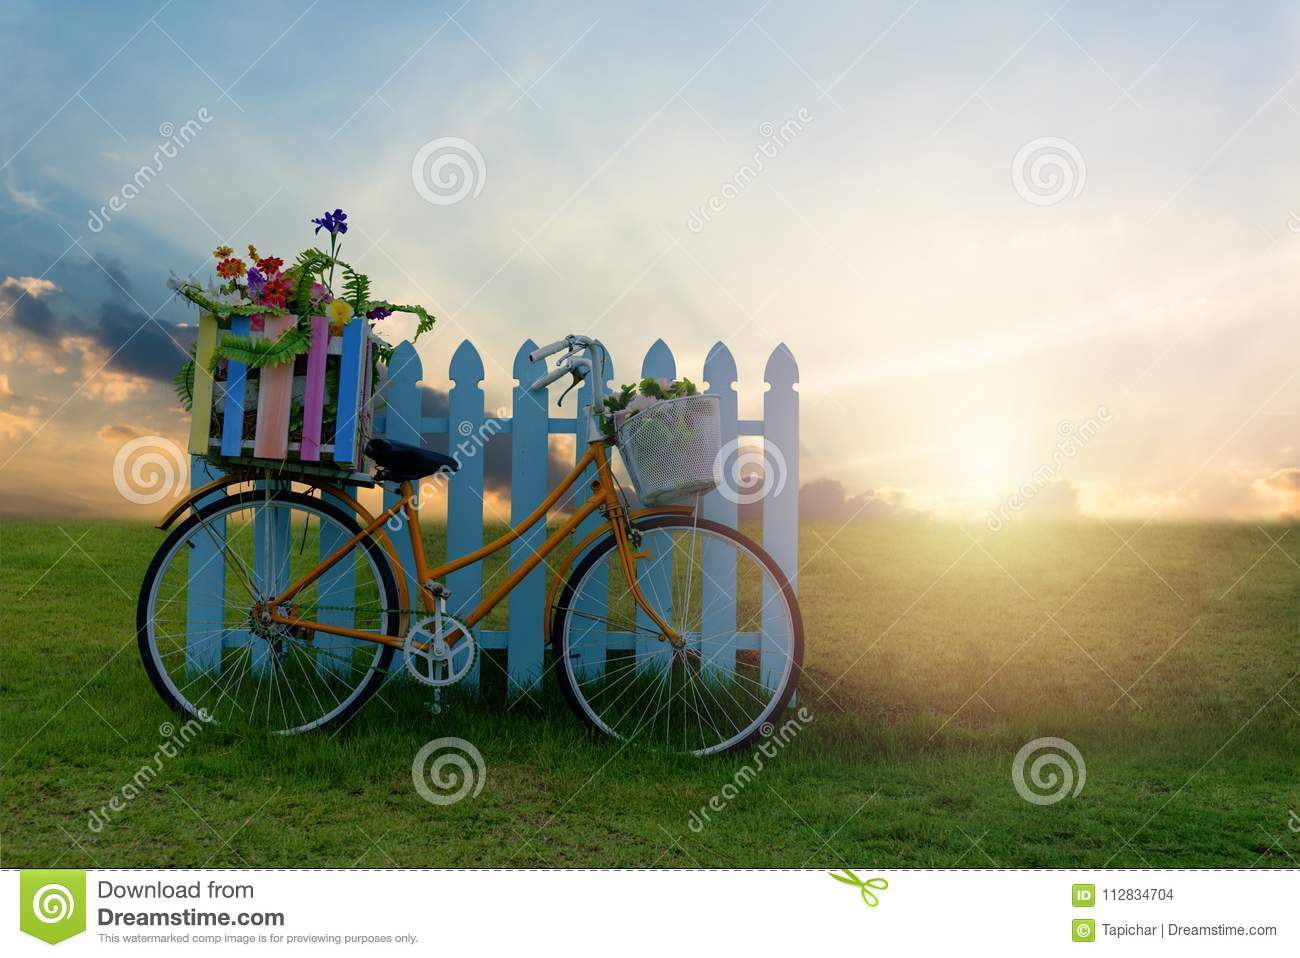 Bicycle with Flower Crate